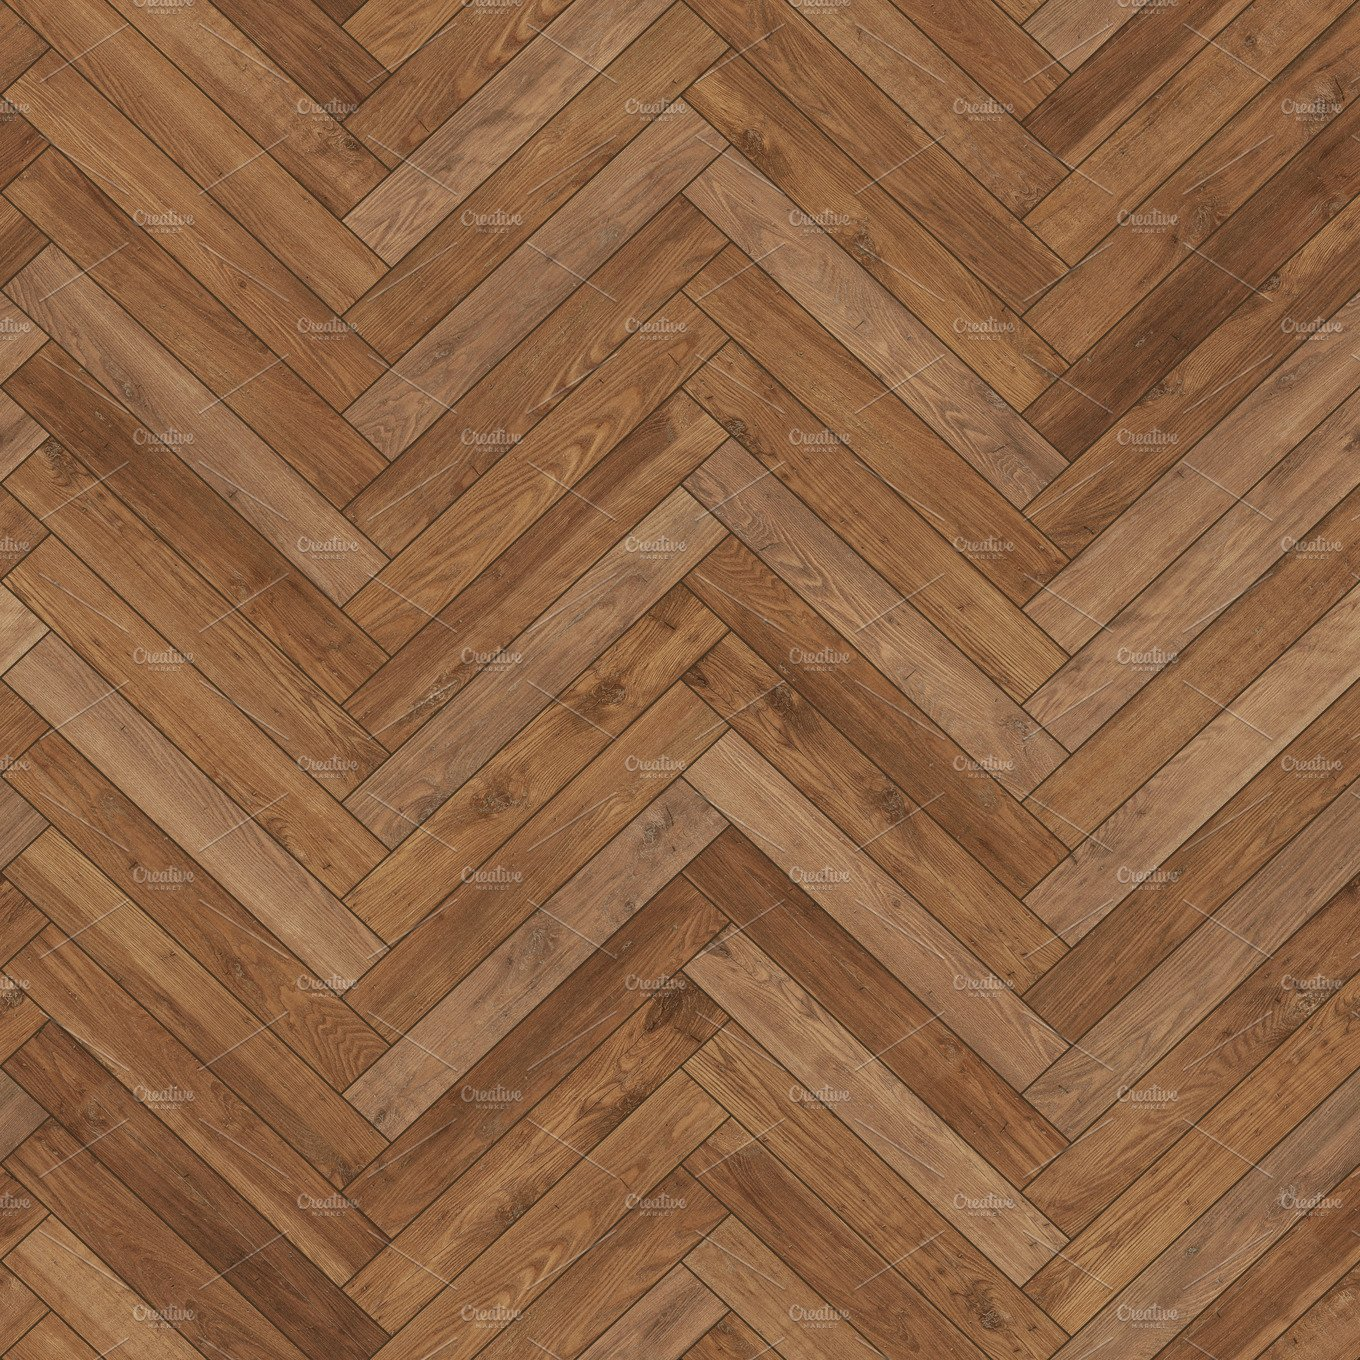 Seamless Wood Parquet Texture Herringbone Brown